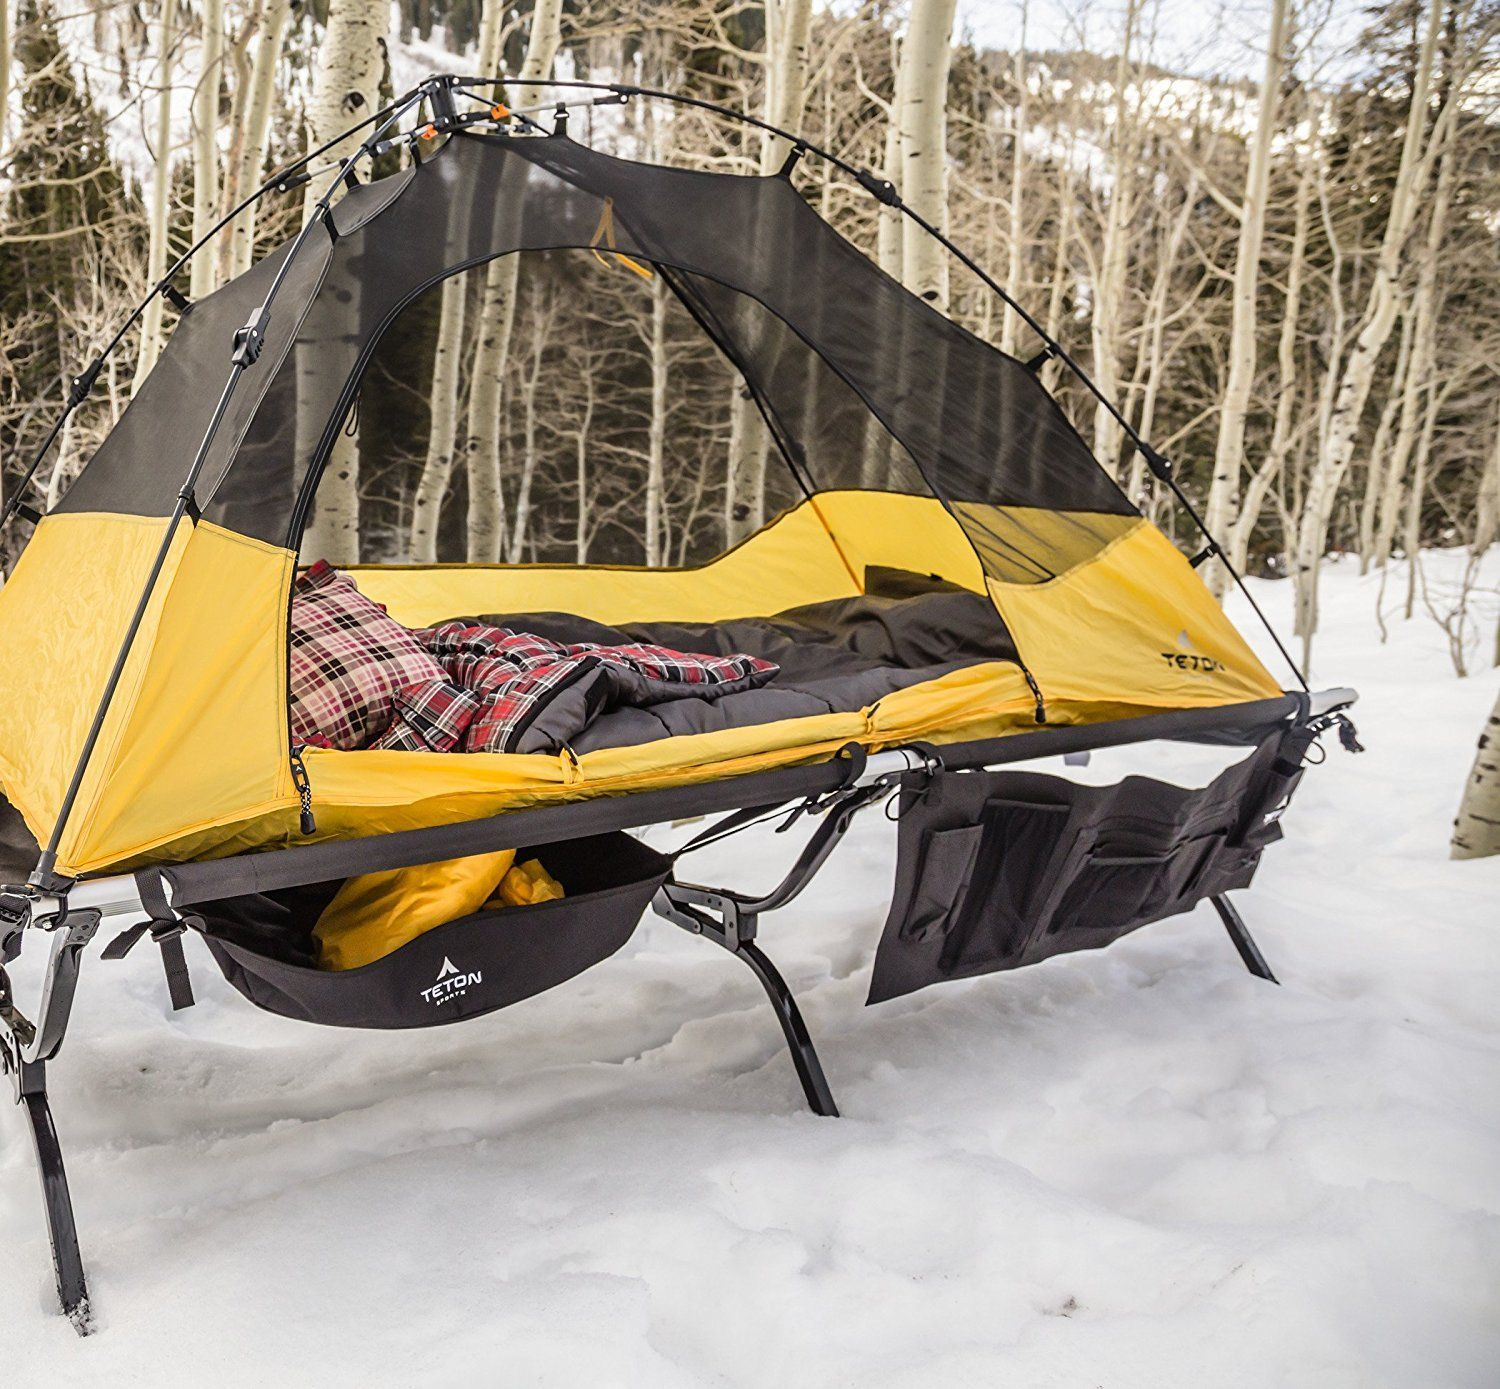 Sleeping In Style Http Campingtentslovers Com Beginners Camping Guide Lit Camping Hamac De Camping Camping En Hiver